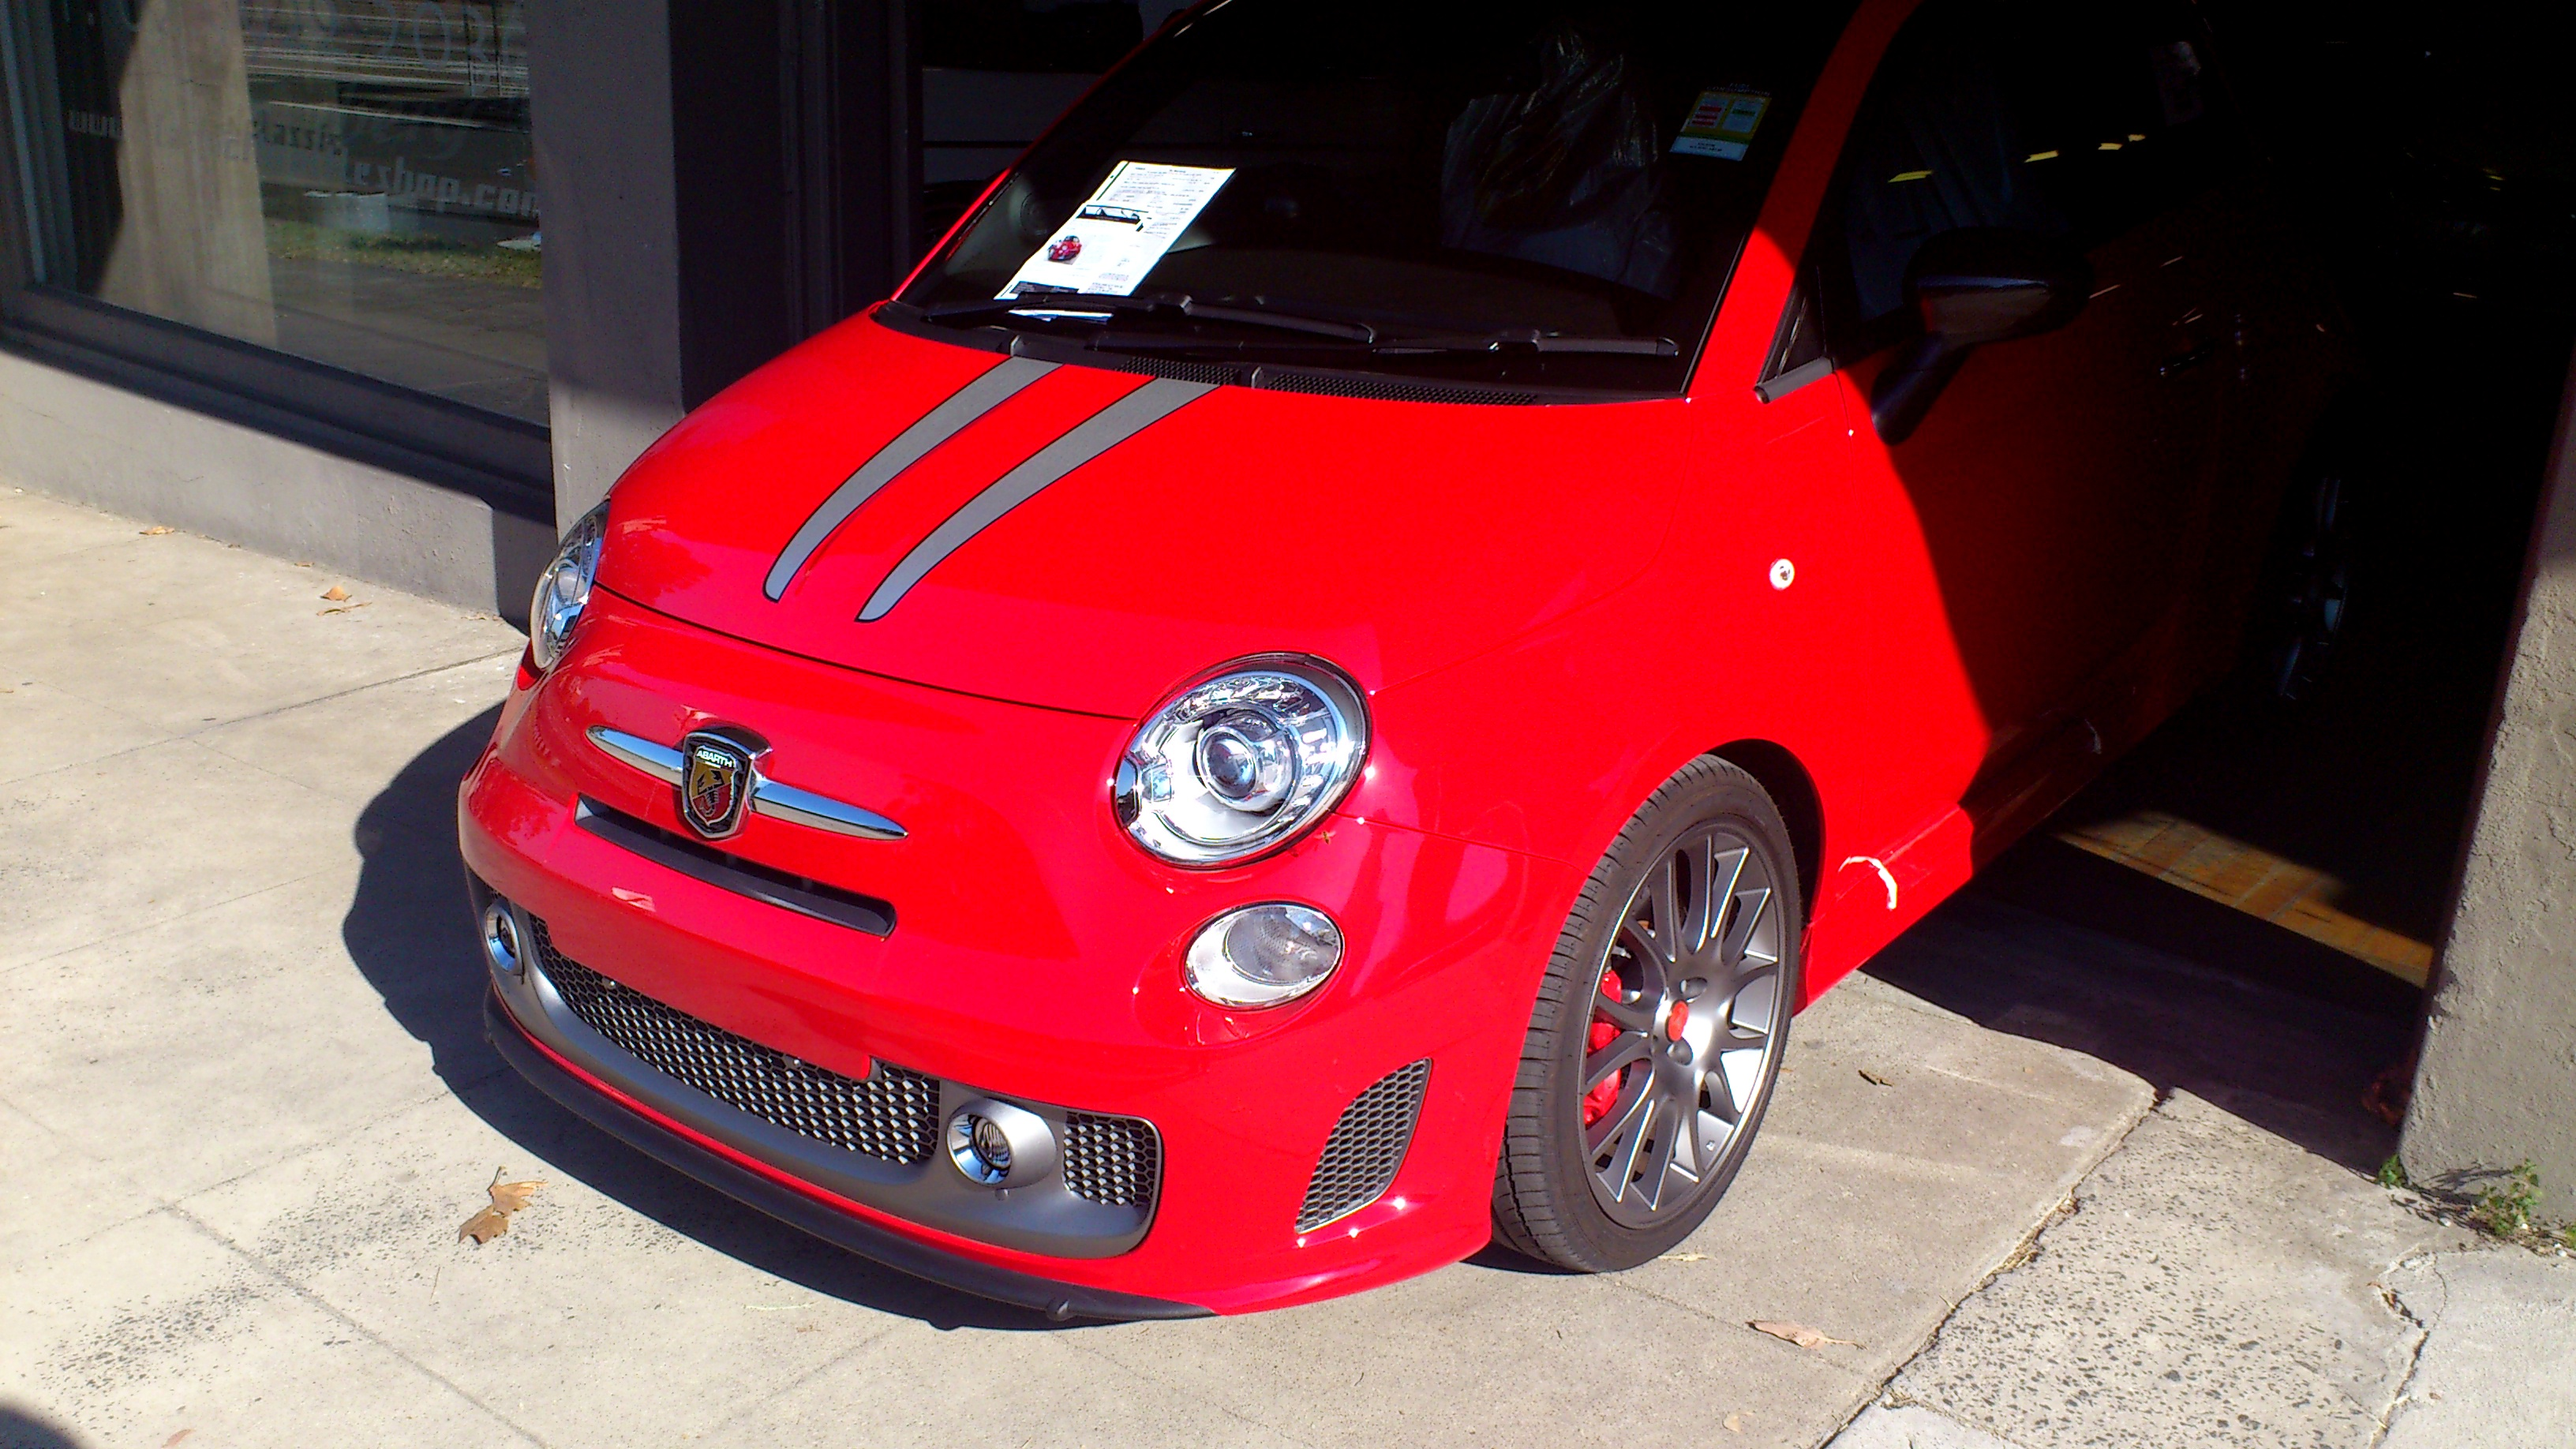 File Fiat 500 Abarth 695 Tributo Ferrari Jpg Wikimedia Commons